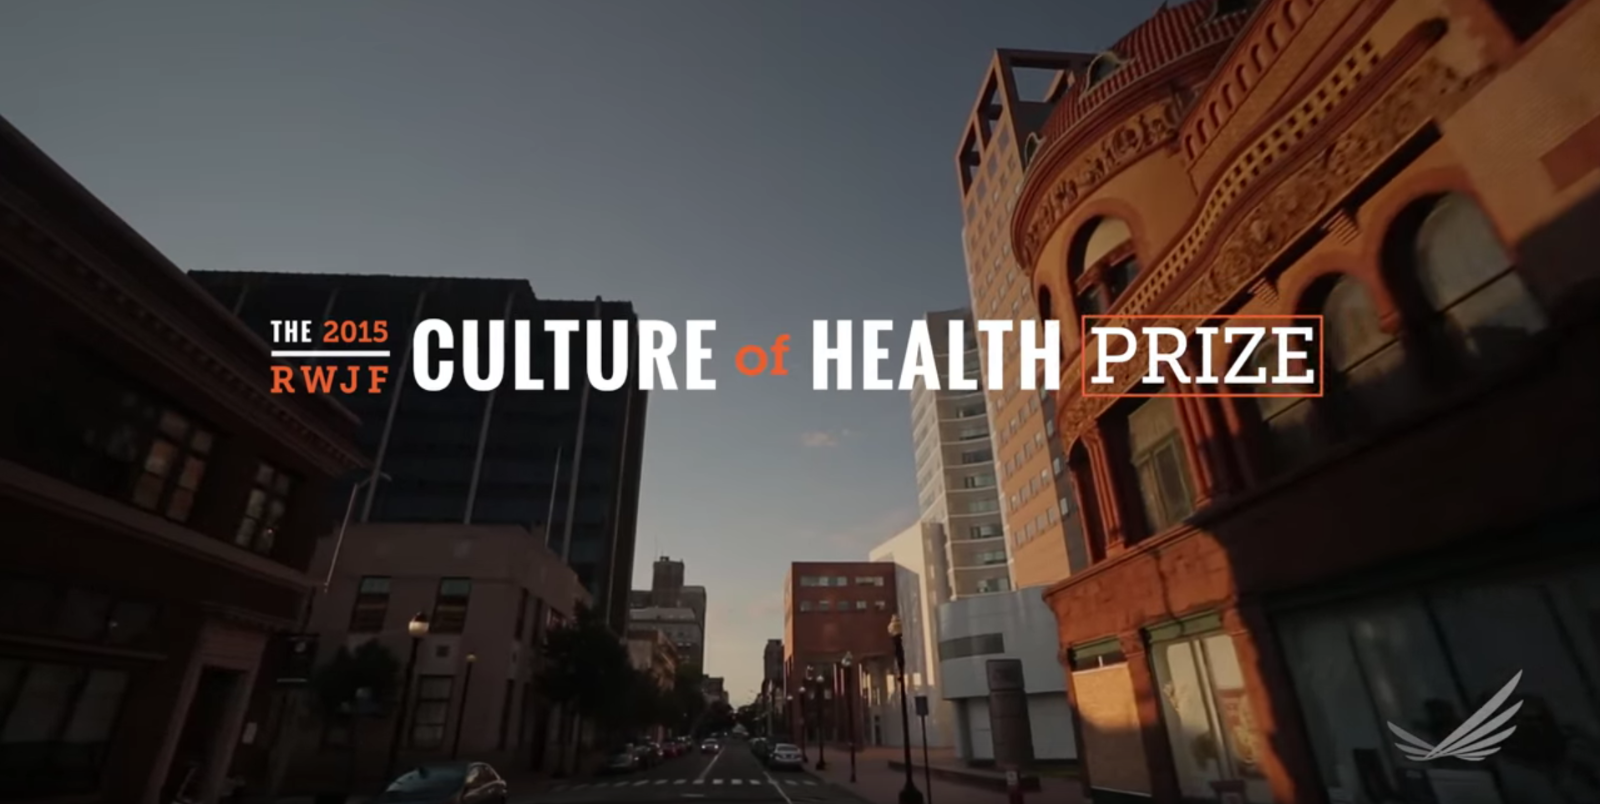 2015 RWJF Culture of Health Prize video